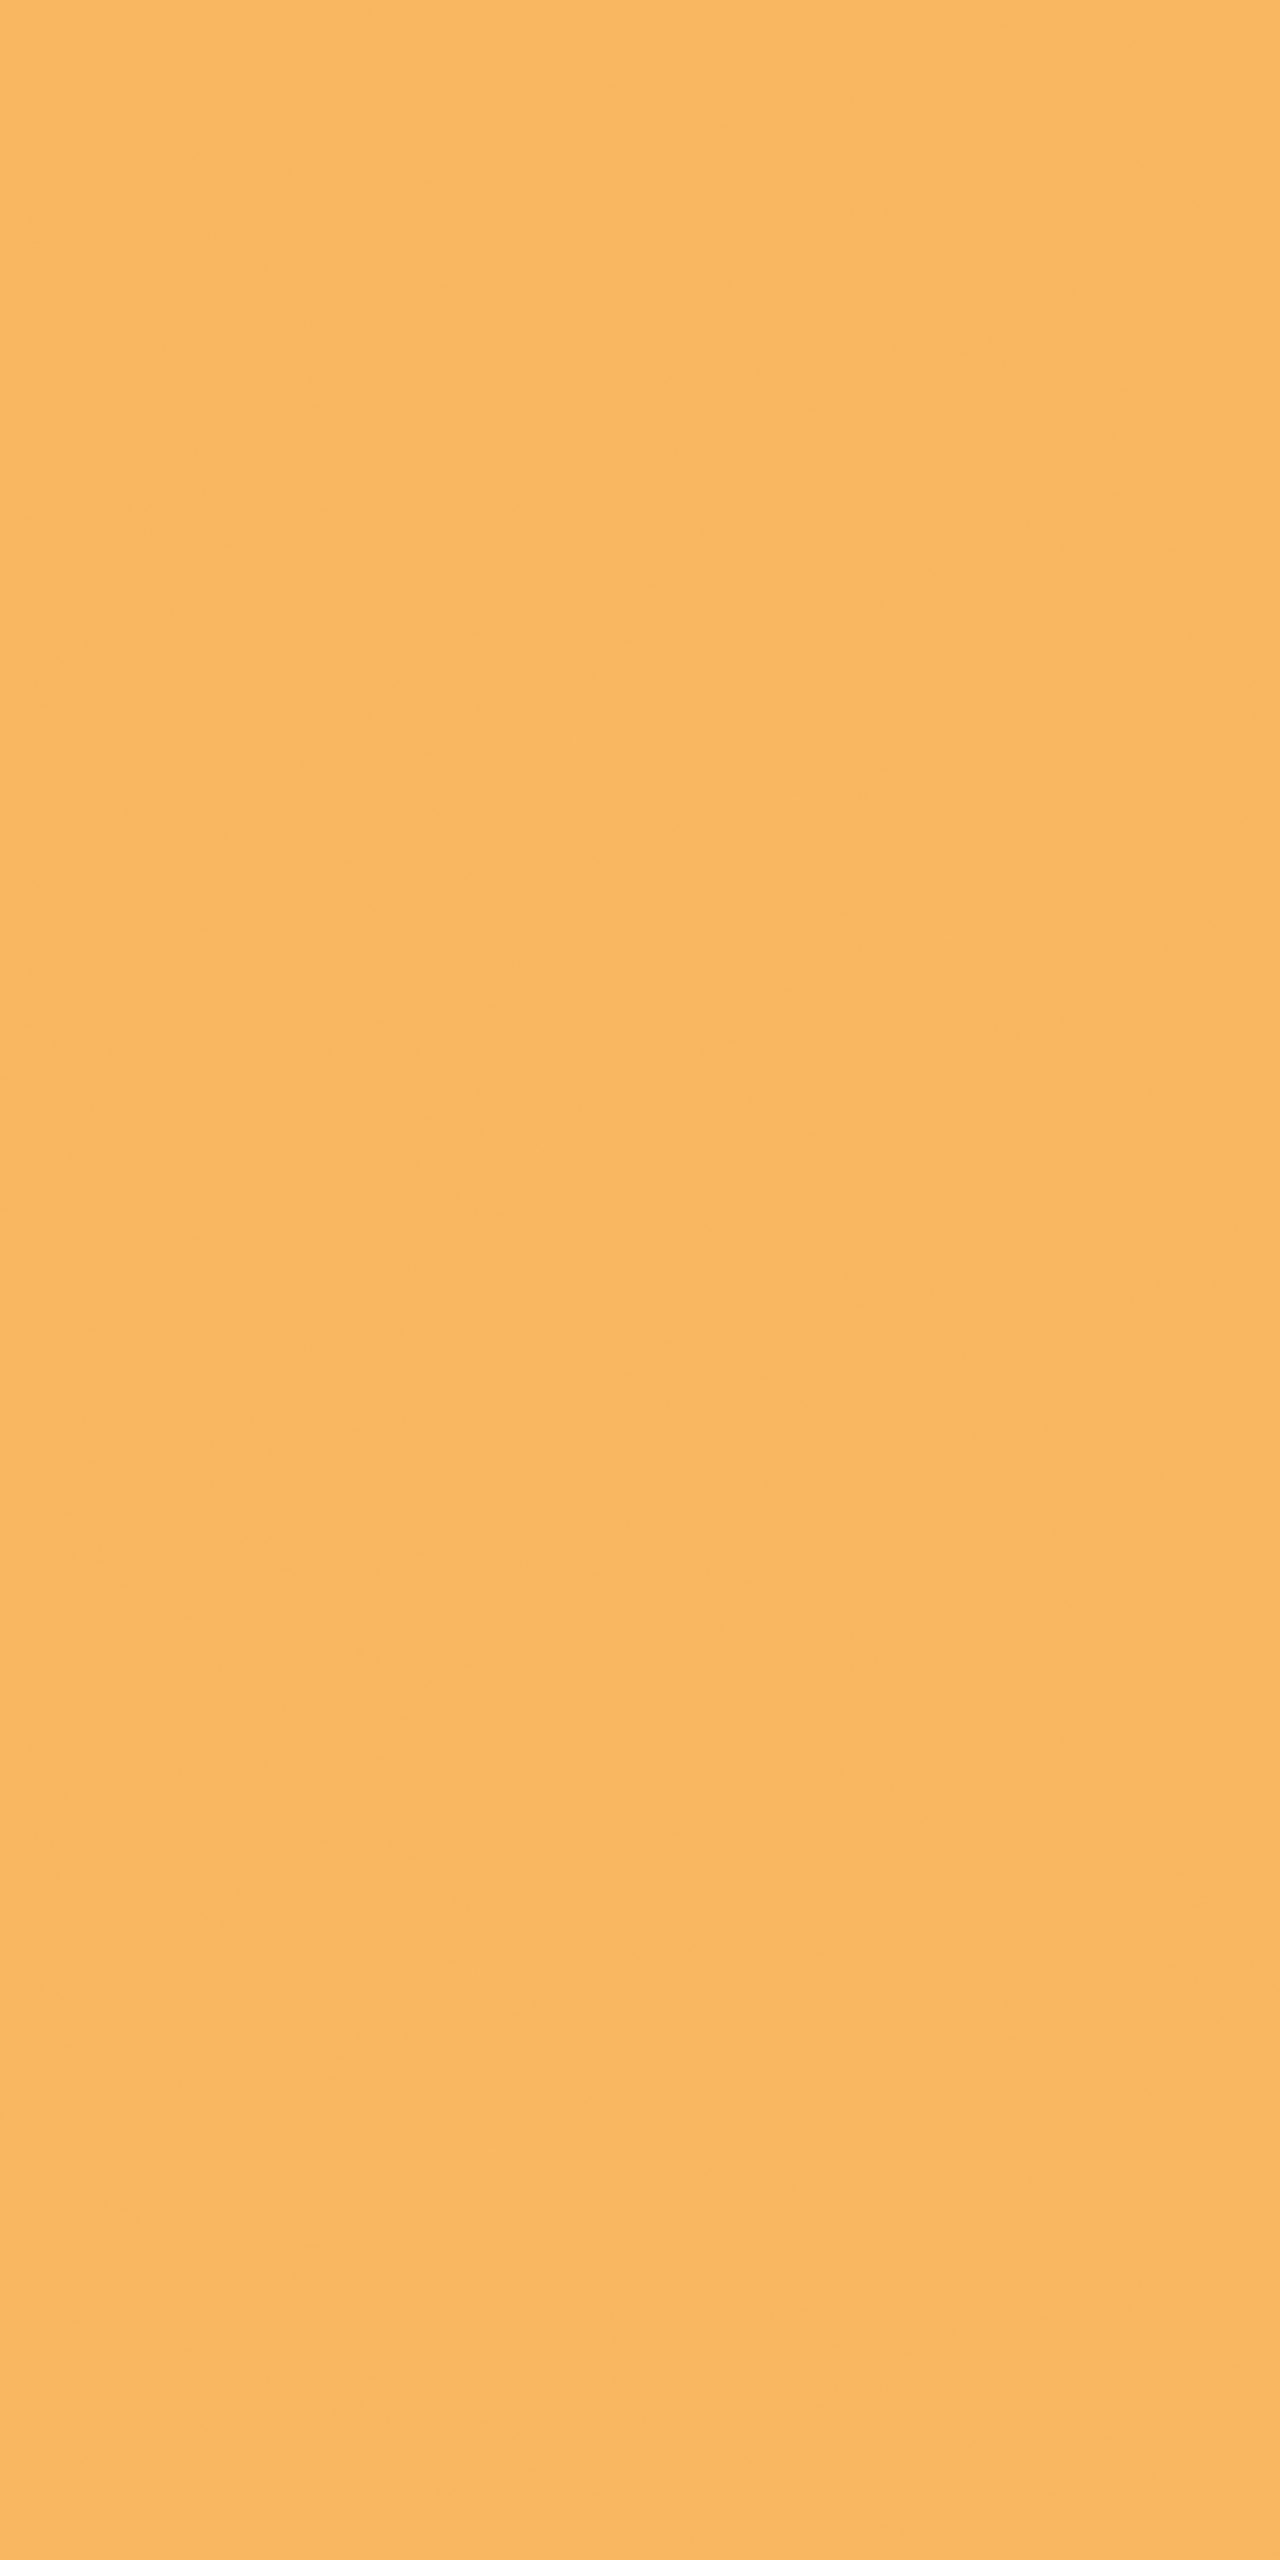 Buildtech 2.0 Bold Colors Creme Glossy 6mm 120 x 240